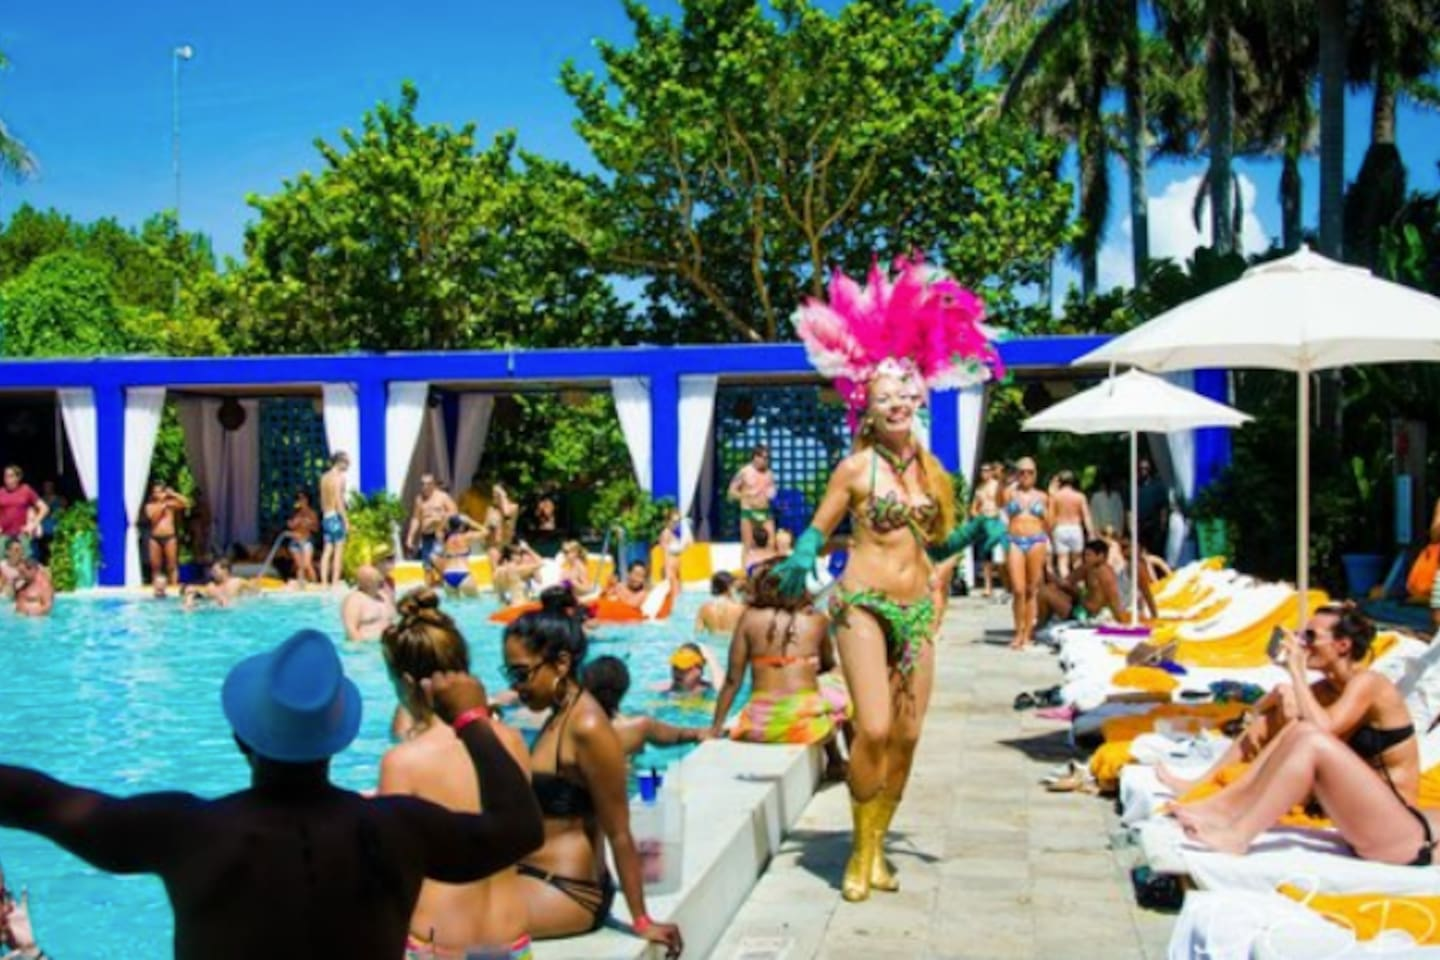 IF YOUR DATES DO NOT SHOW AVAILABLE PLEASE SEND A REQUEST SYSTEM PROBLEMS WITH OUR CALENDAR  Pool Passes available at The Shore Club.  Ask us